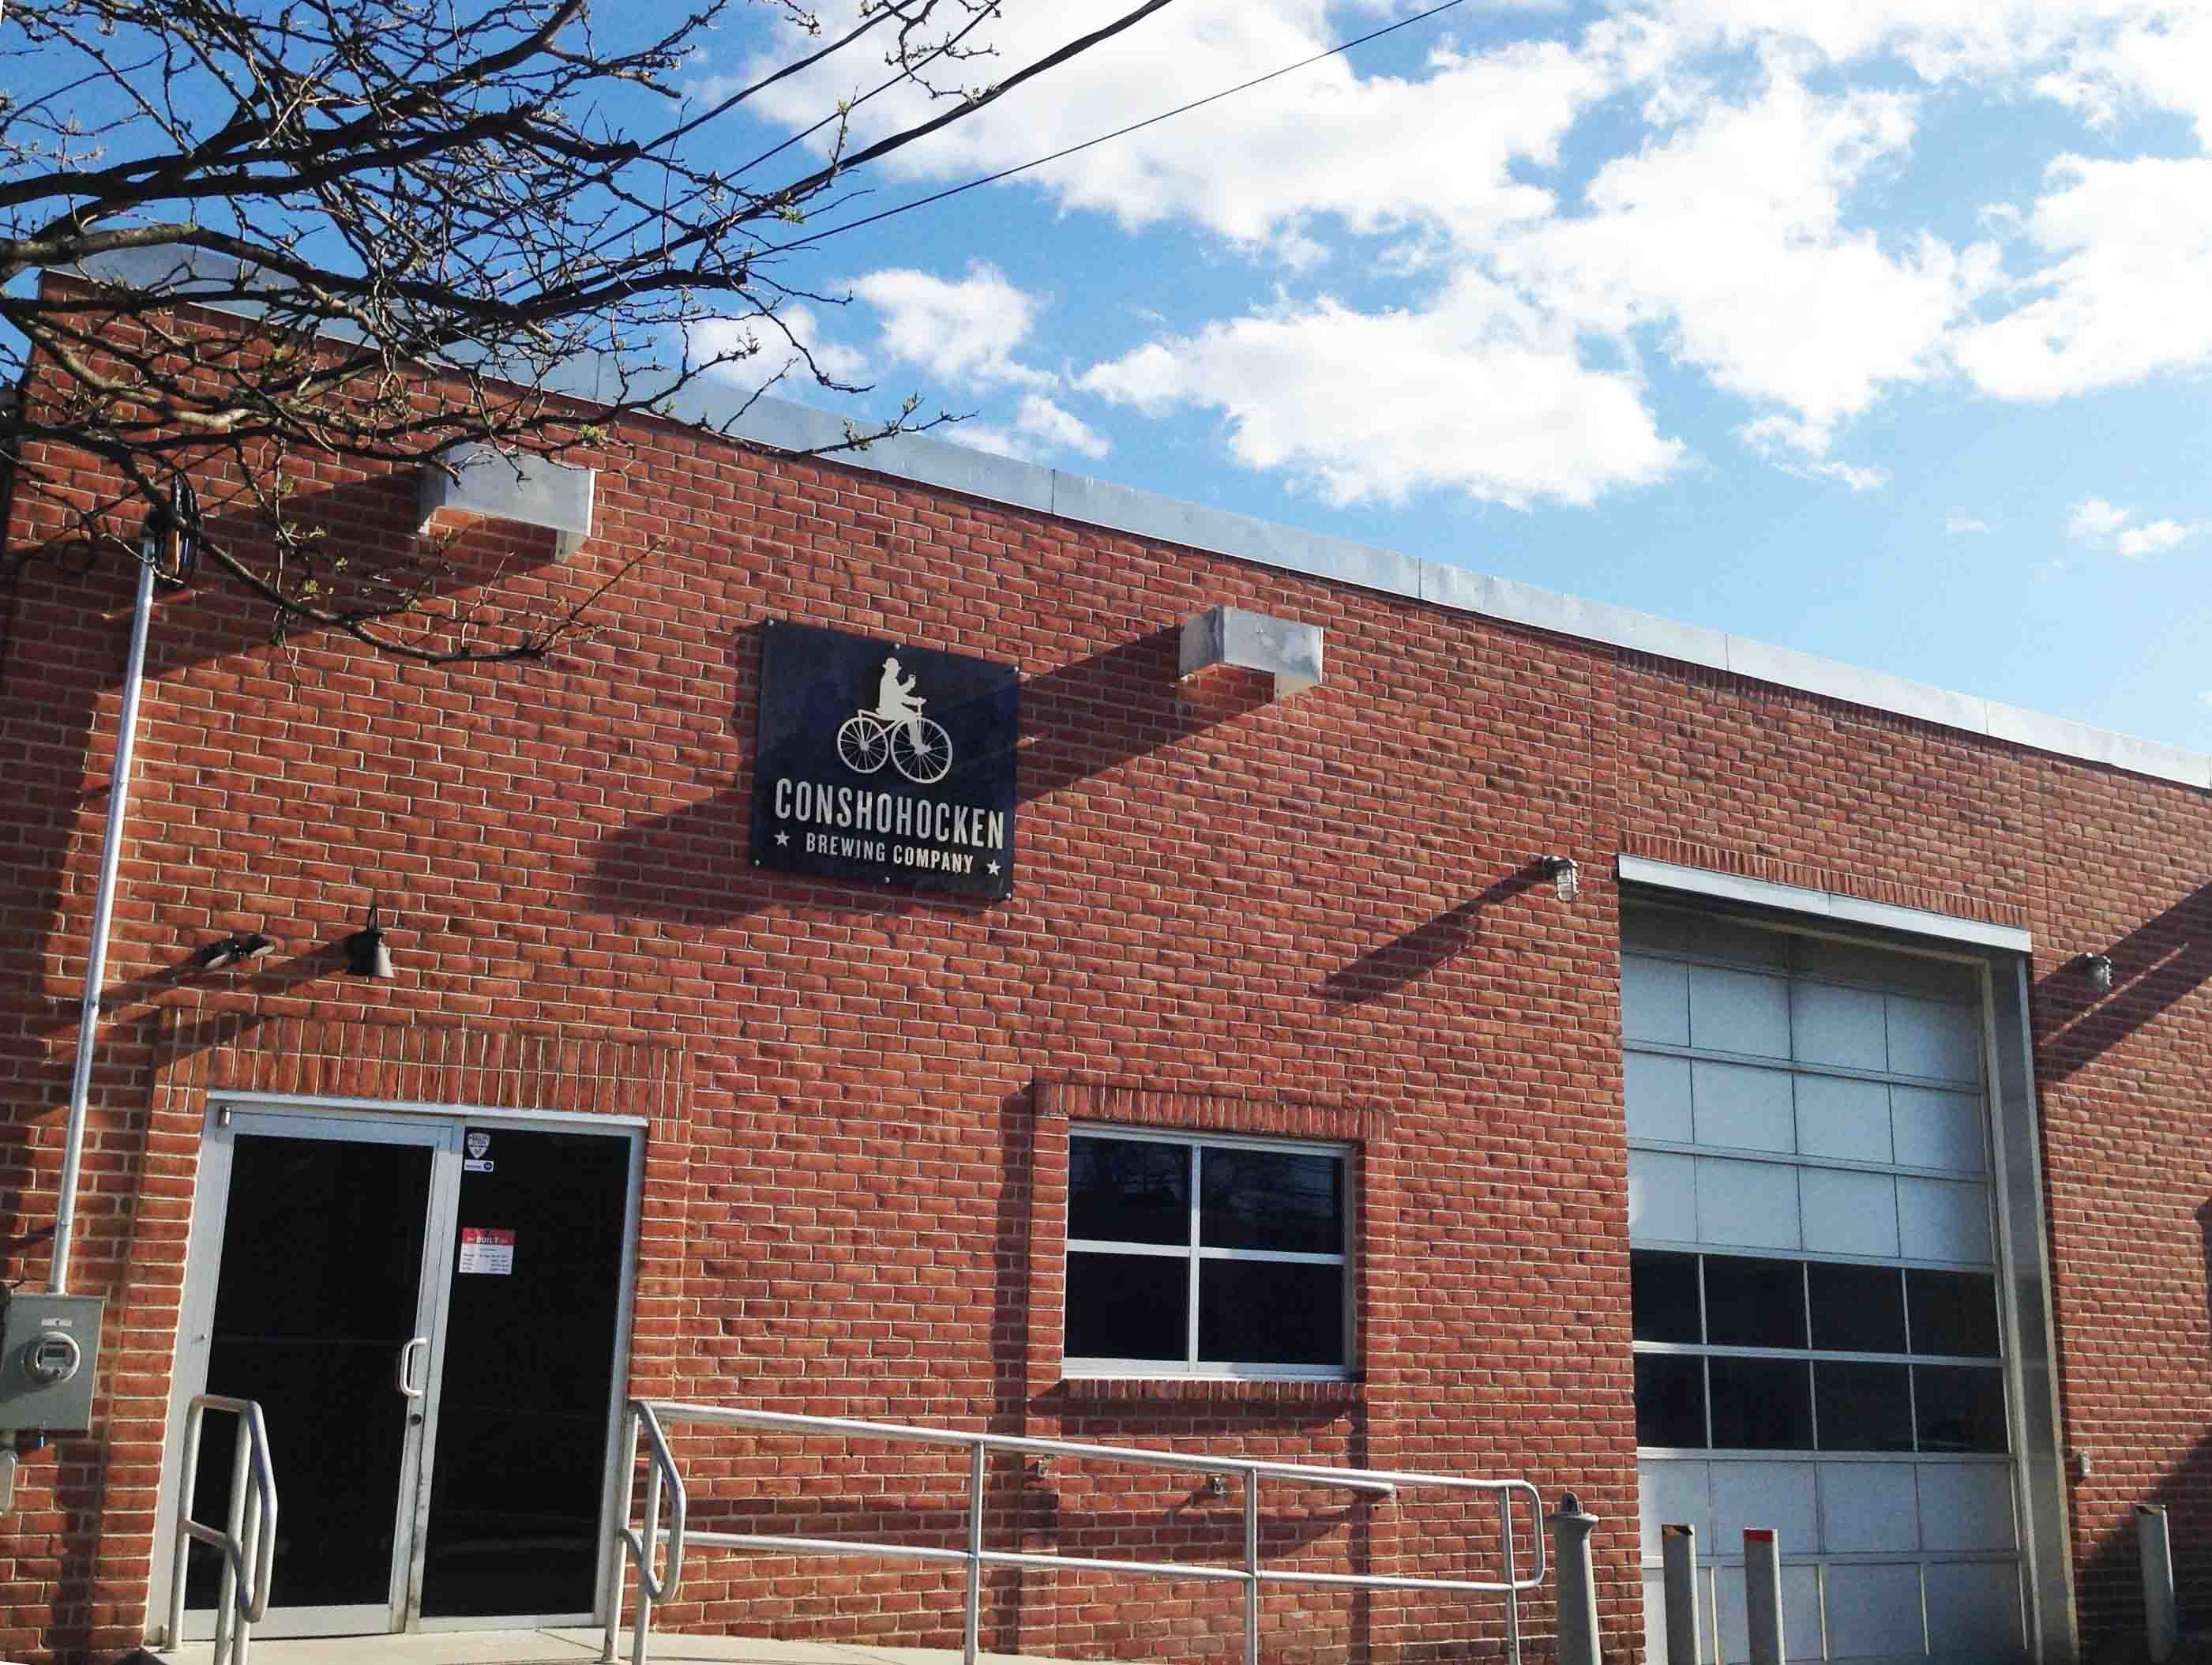 210. Conshohocken Brewing Co, Conshohocken PA 2014